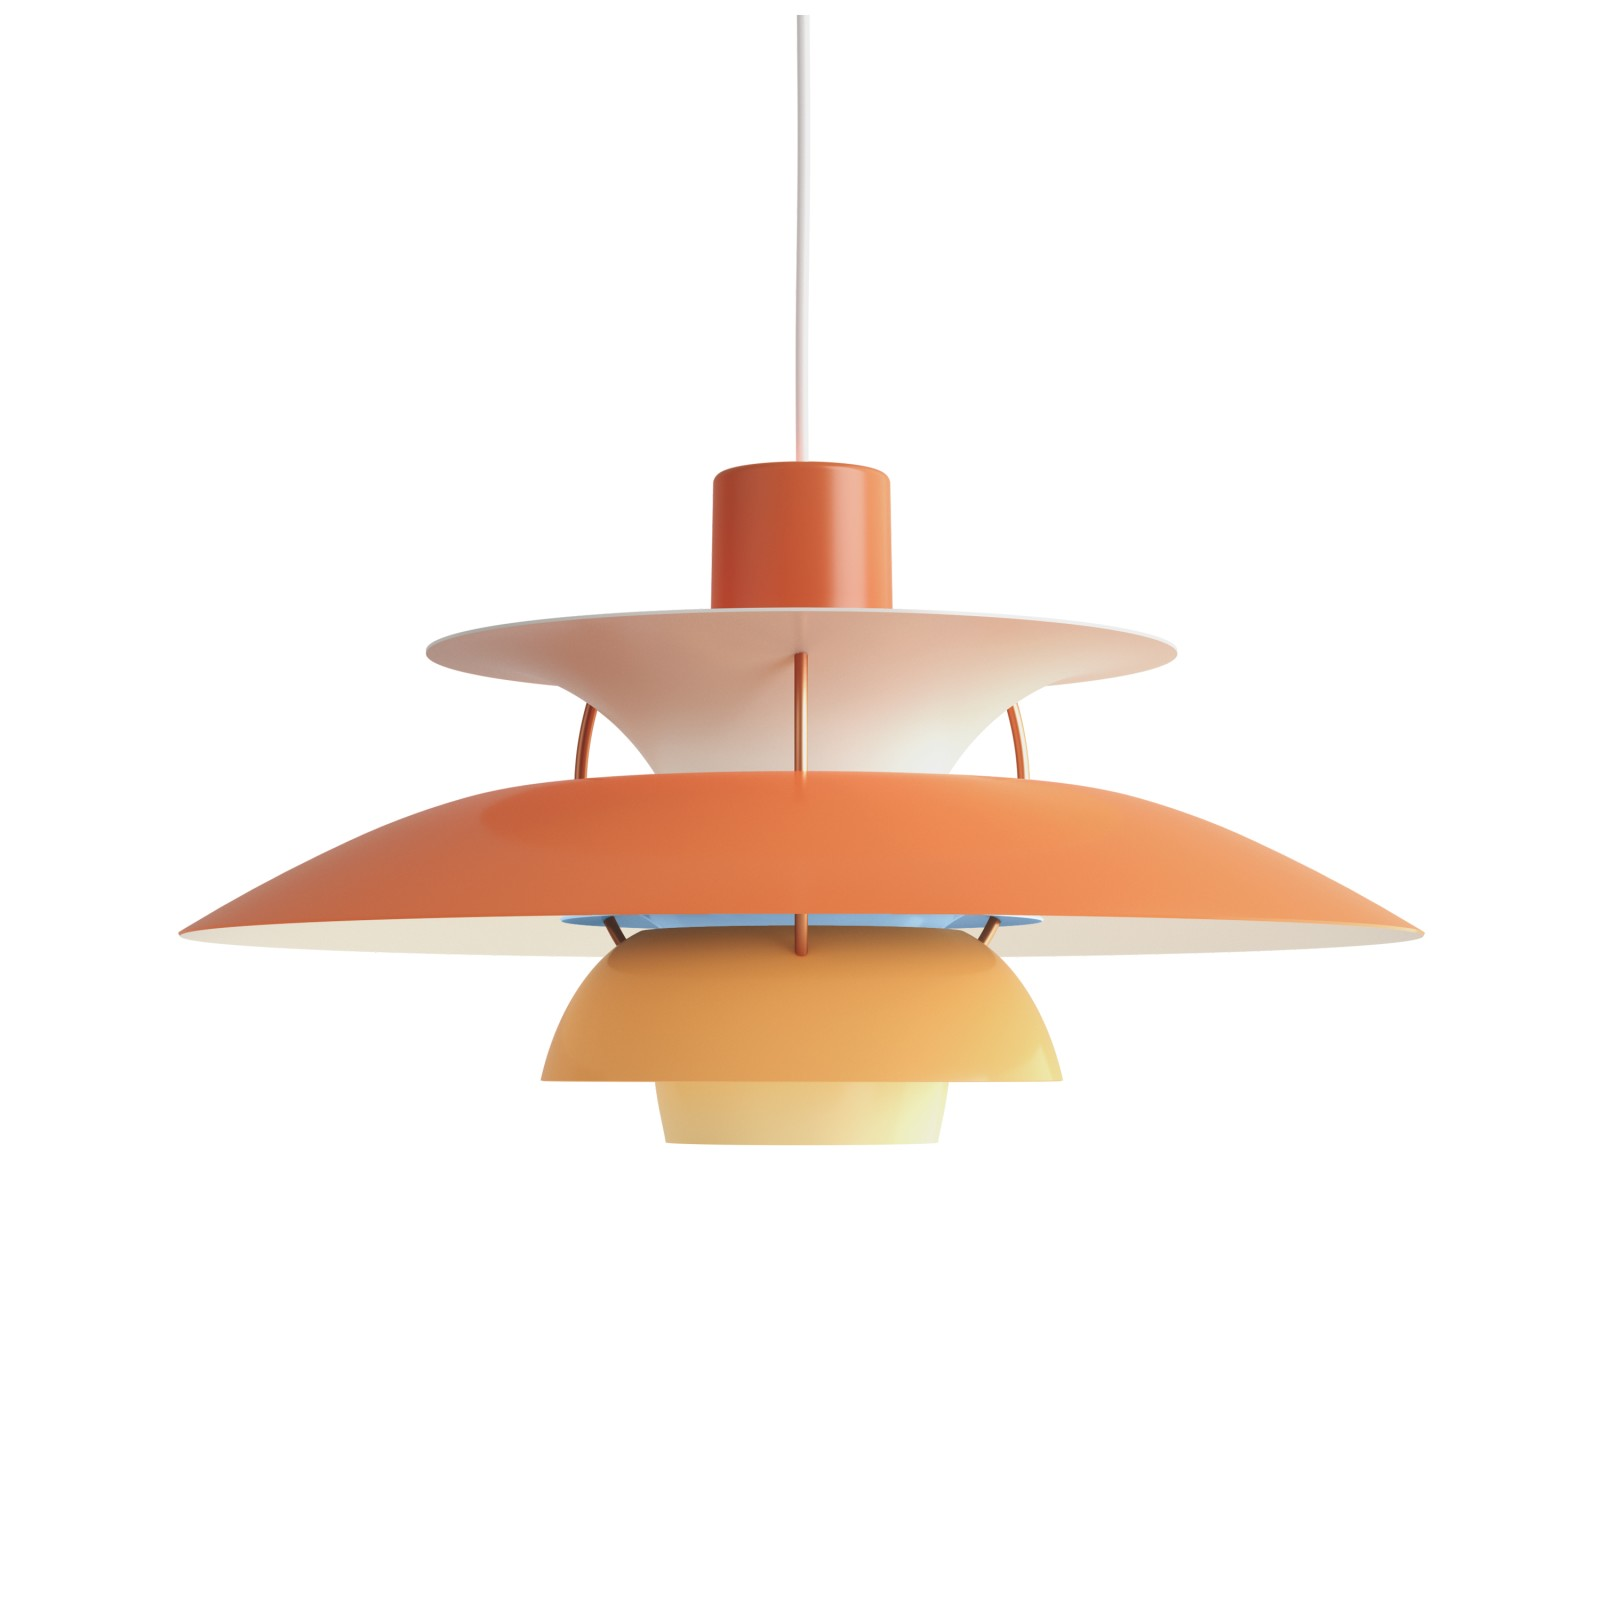 PH 5 Pendant Light Hues of Orange